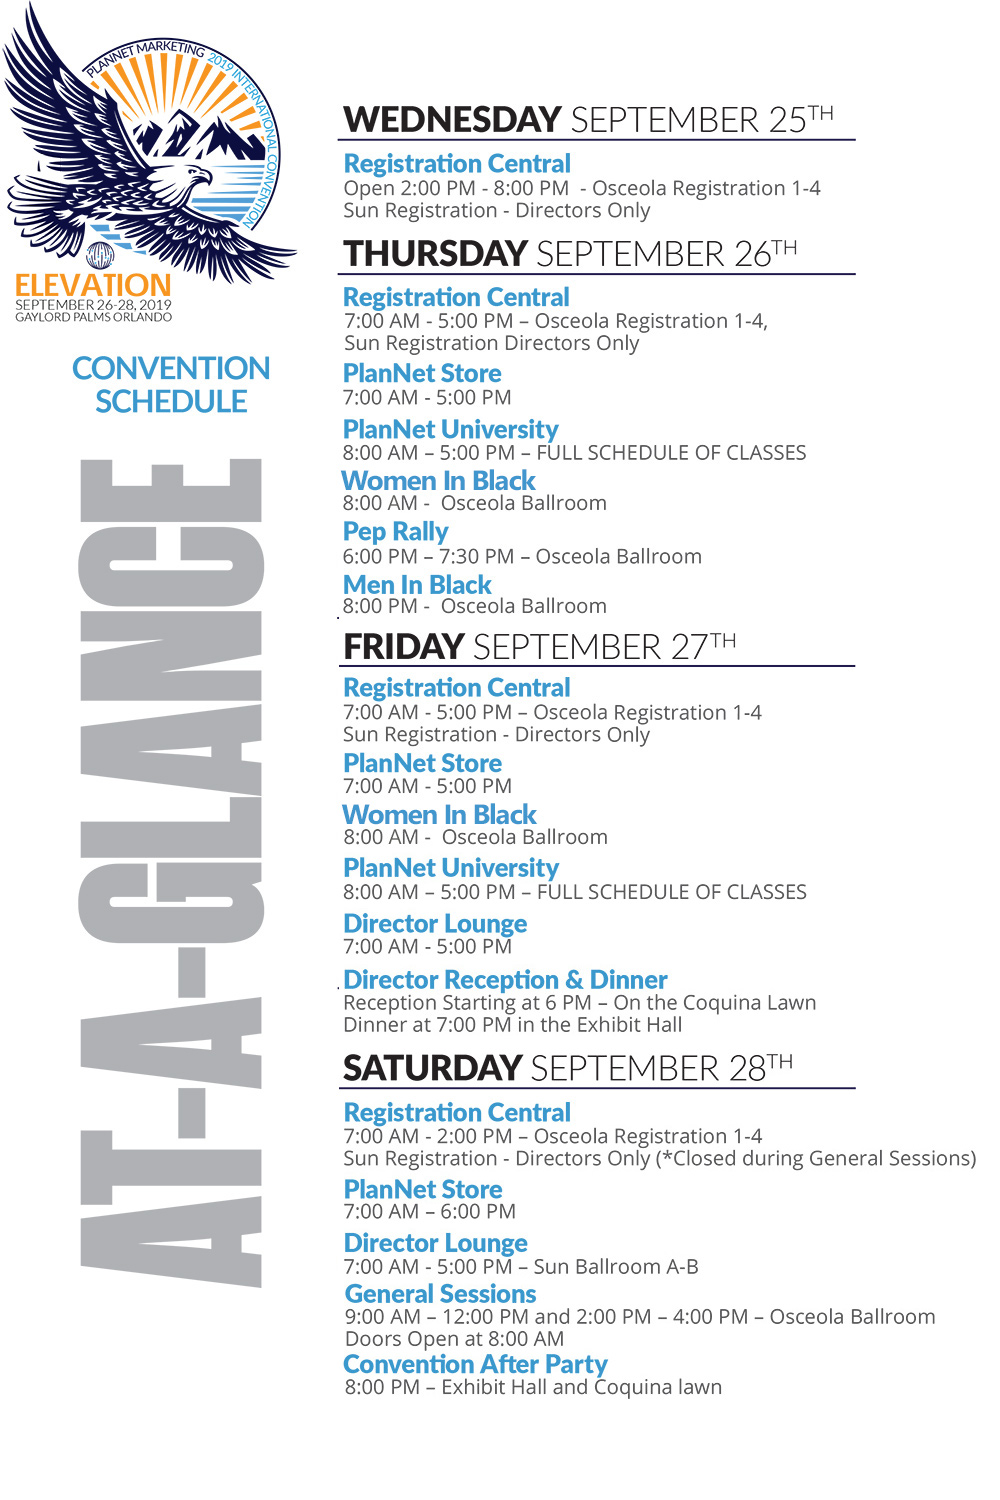 Schedule-at-a-glance_revised.jpg